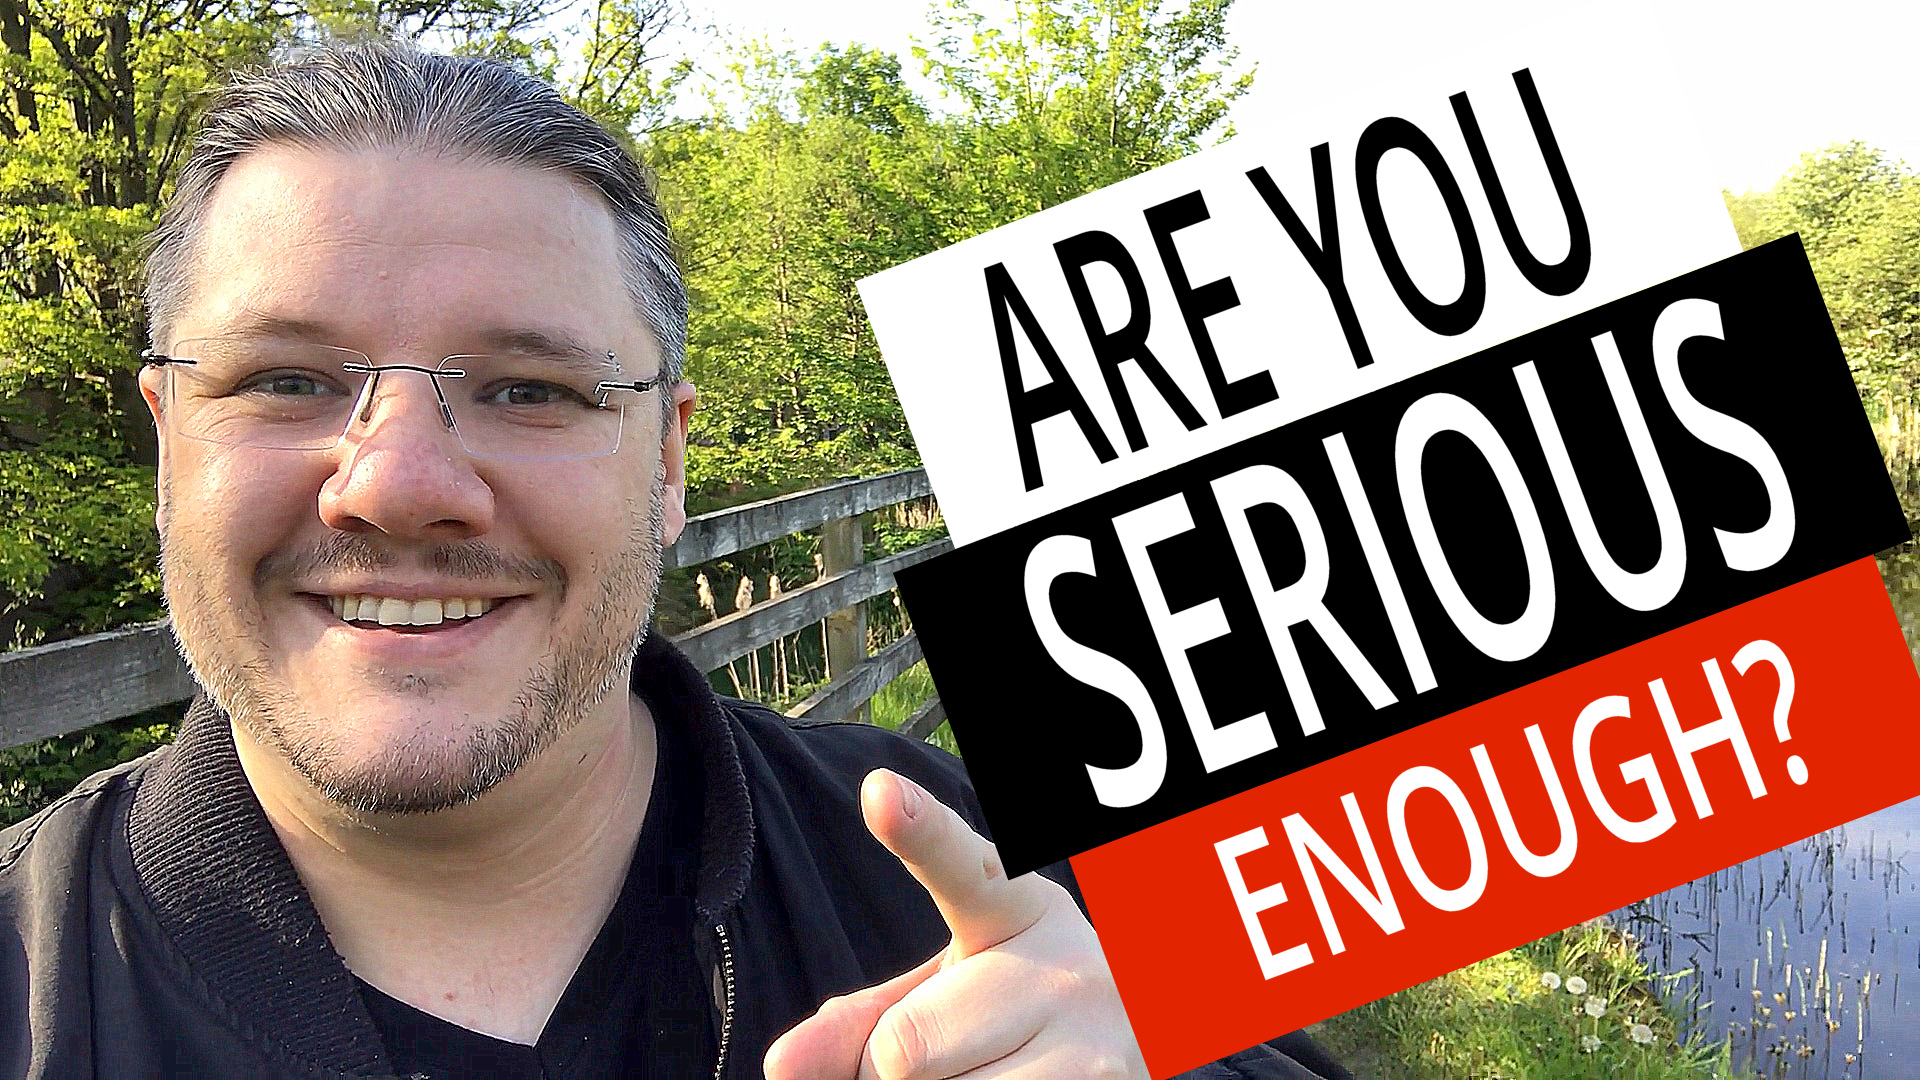 Take YouTube Seriously - How To Grow on YouTube #Rant